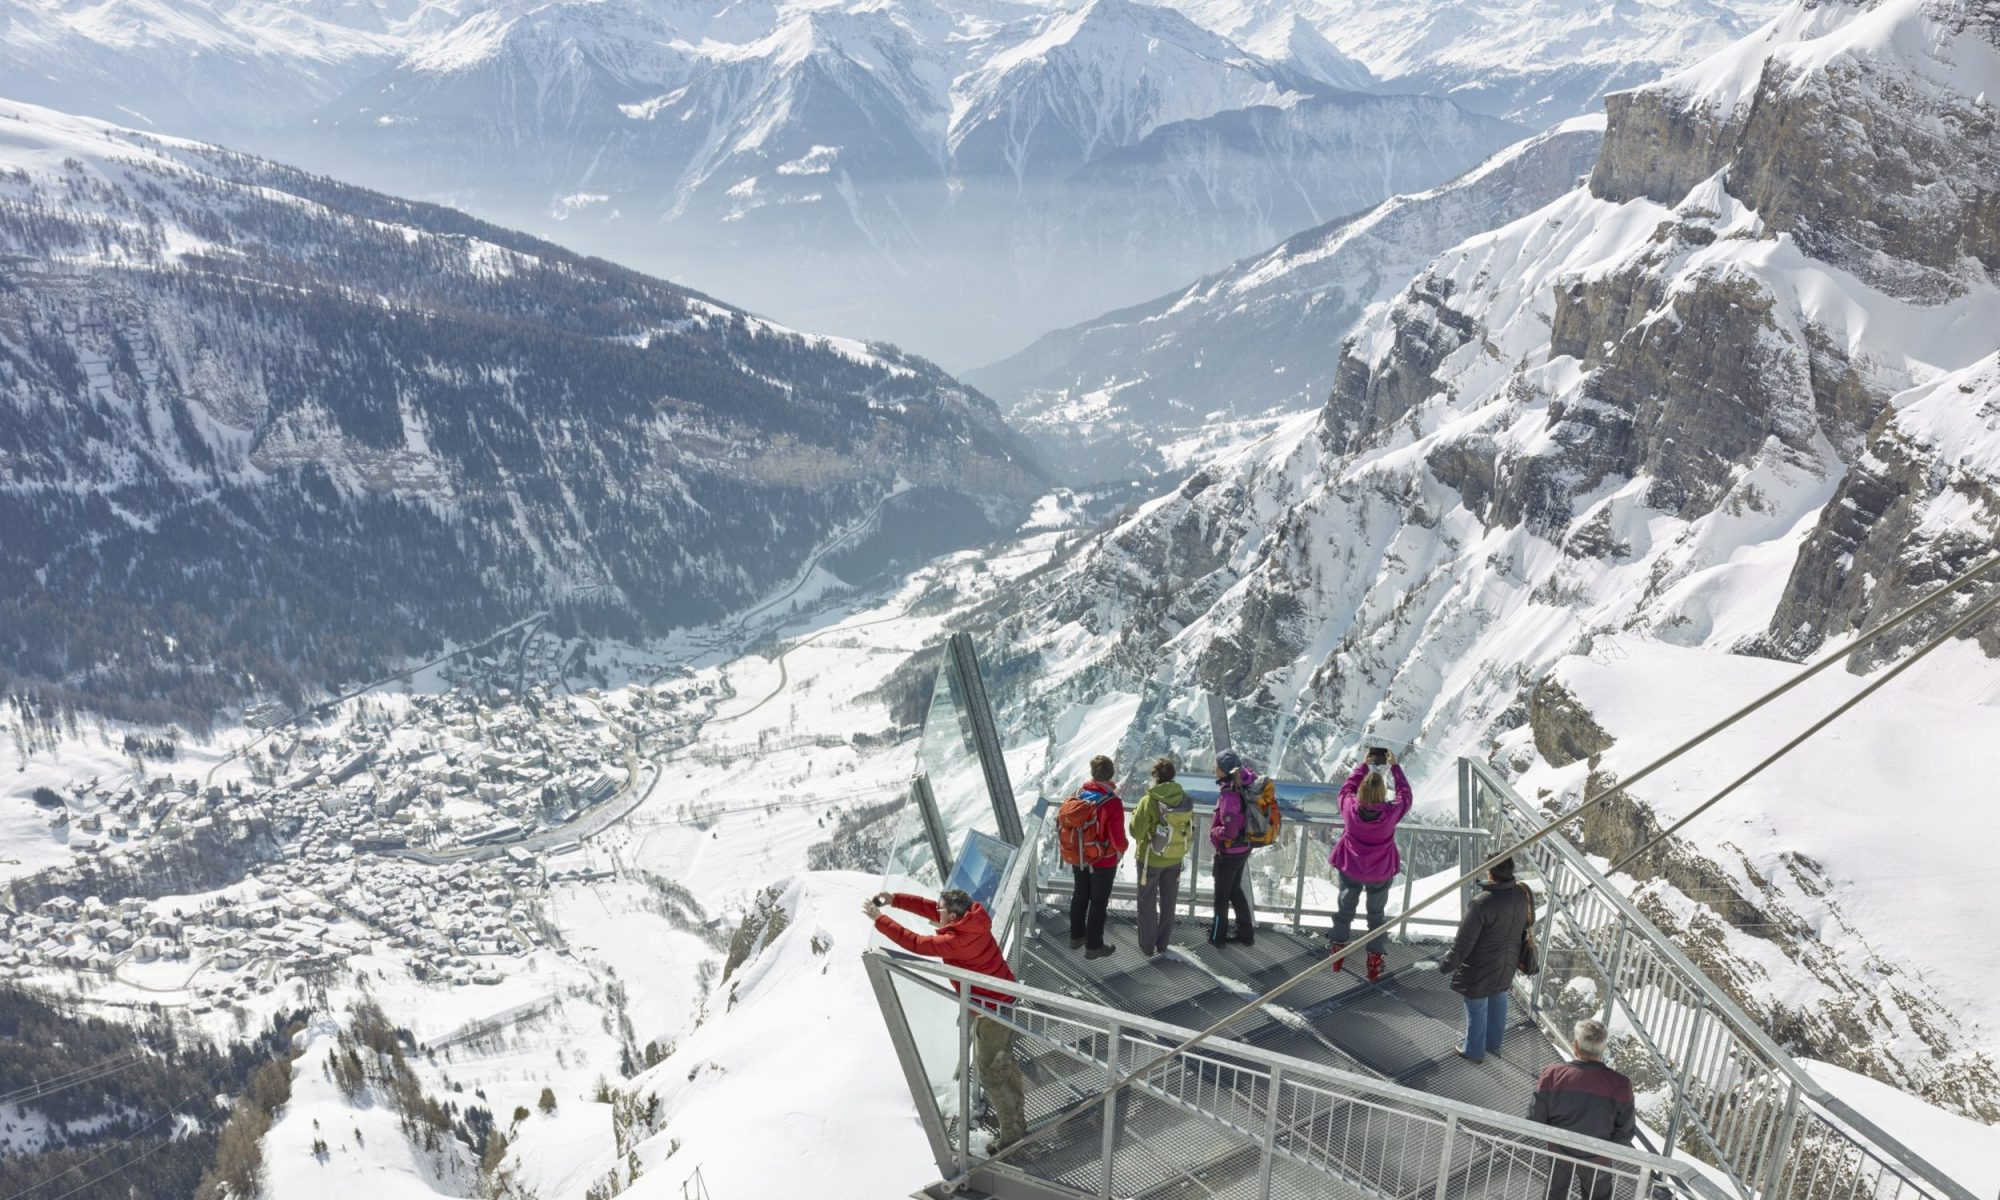 Leukerbad - a magnificent place in the Swiss Alps. Two more sport deaths in the Swiss Alps